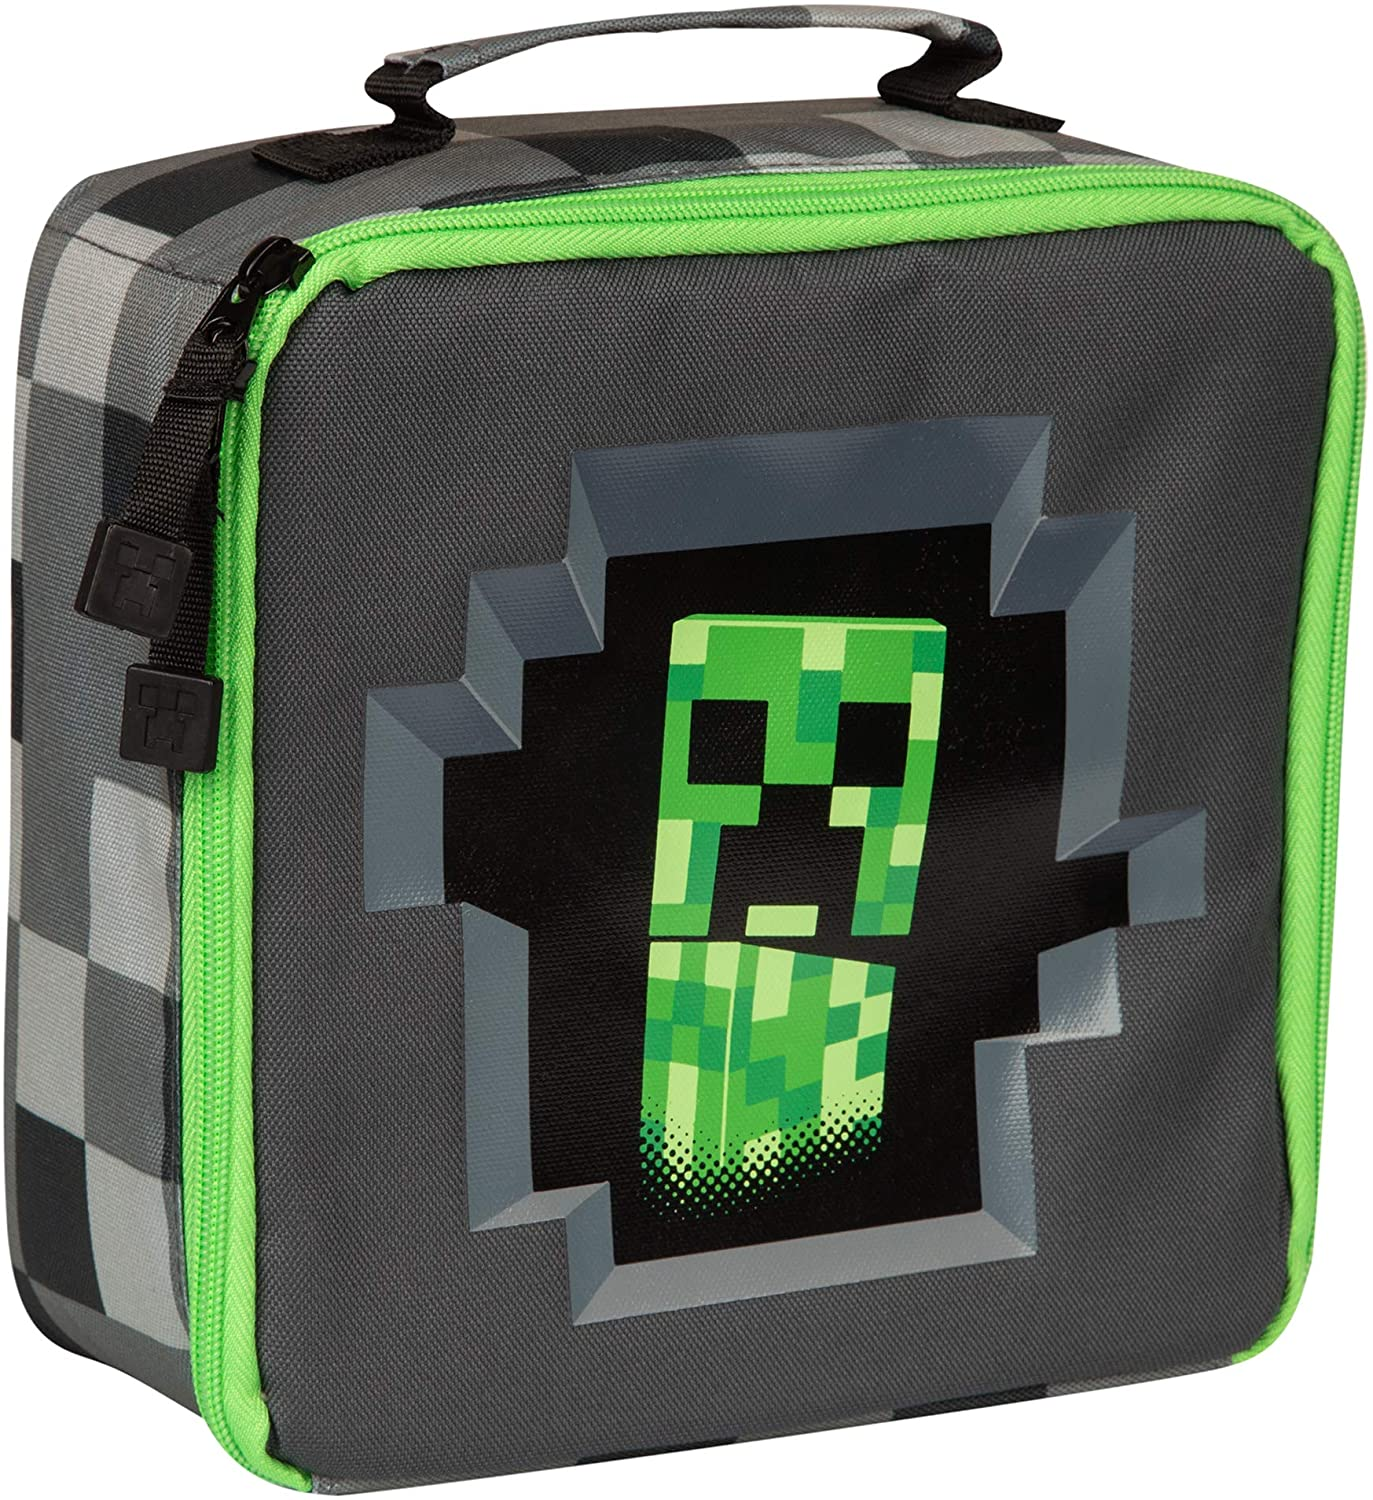 JINX 11 Minecraft Childrens Kids Official Pixelated Grey Creeper Lunch Box